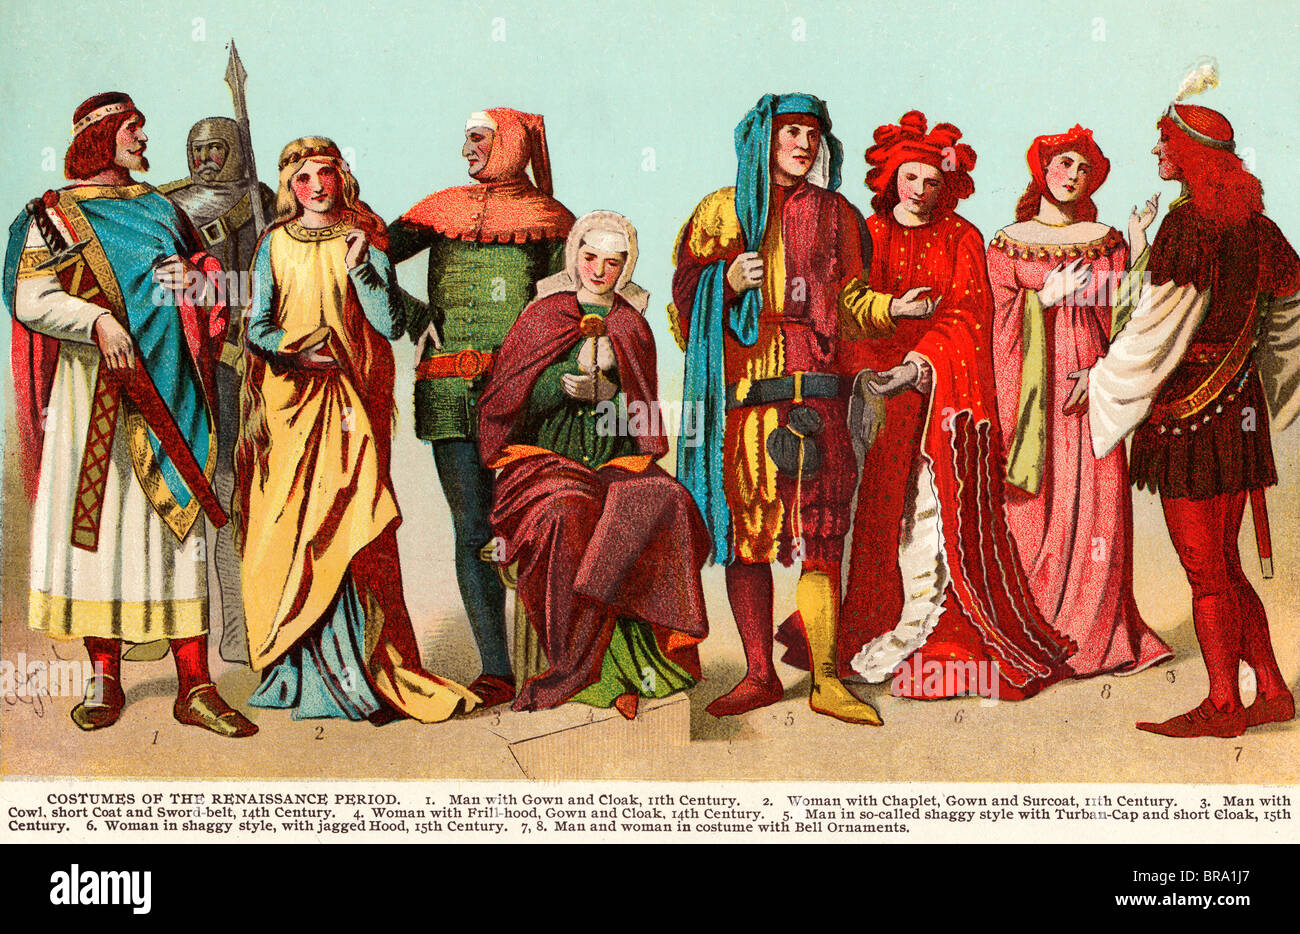 COSTUMES OF THE RENAISSANCE PERIOD LINE OF MEN AND WOMEN IN CLOTHING FROM THE 11TH TO 15TH CENTURY - Stock Image